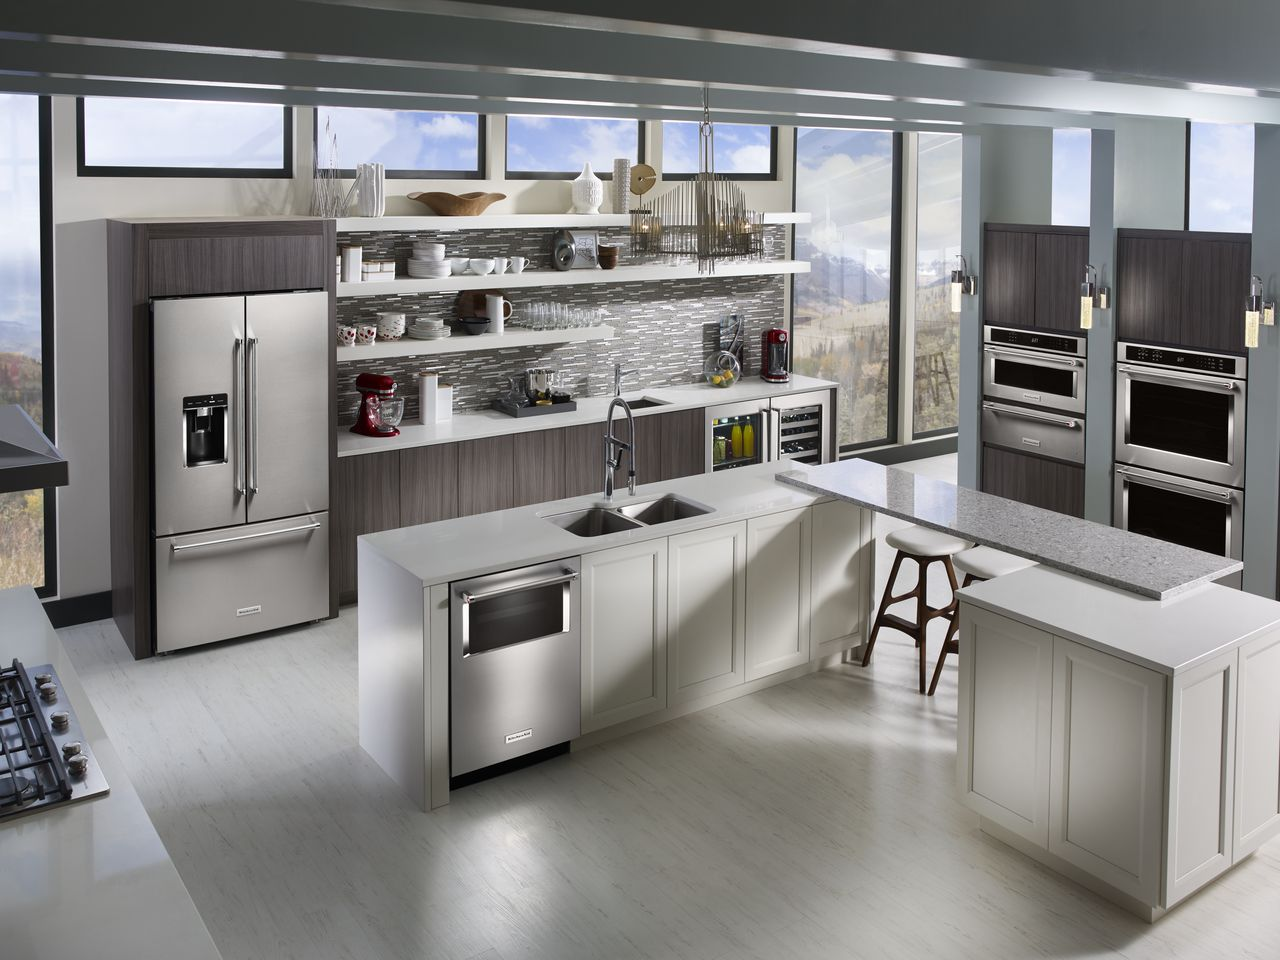 KITCHENAID INTRODUCES THREE DOOR FREE STANDING REFRIGERATOR